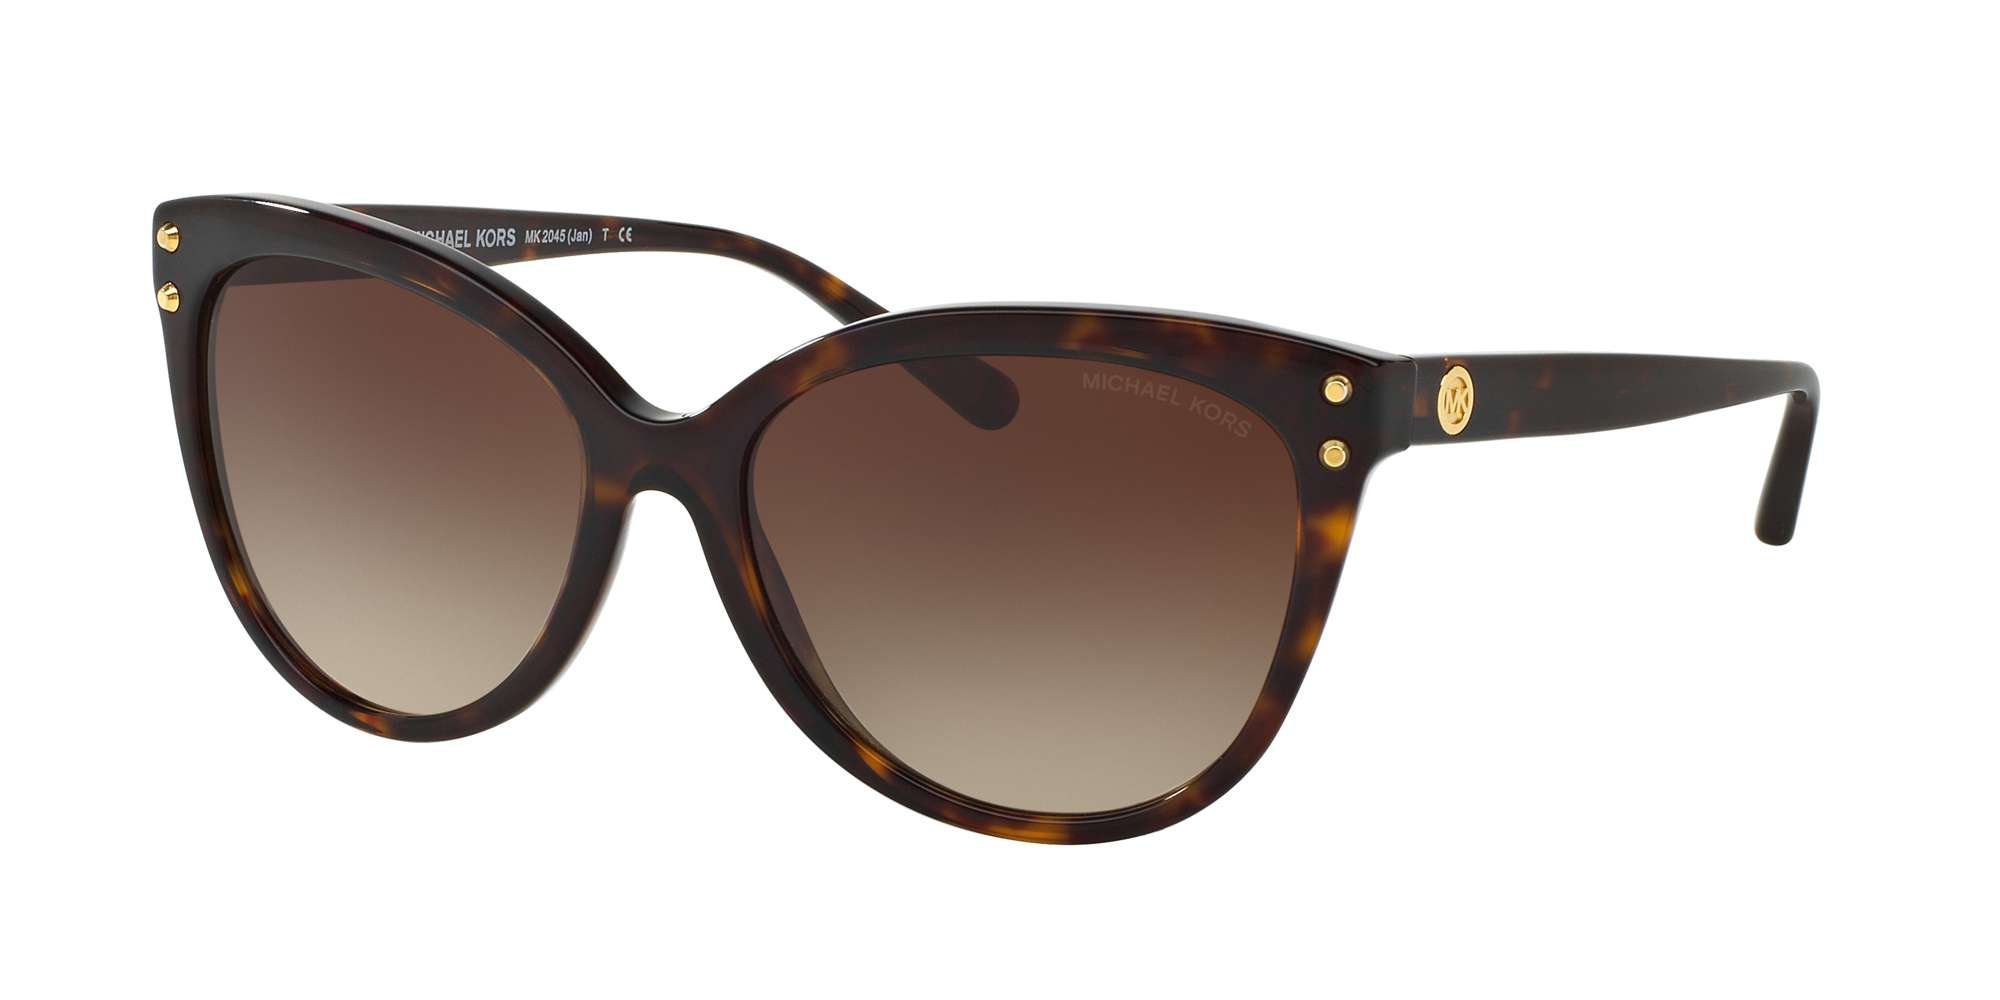 DARK TORTOISE ACETATE / BROWN GRADIENT lenses